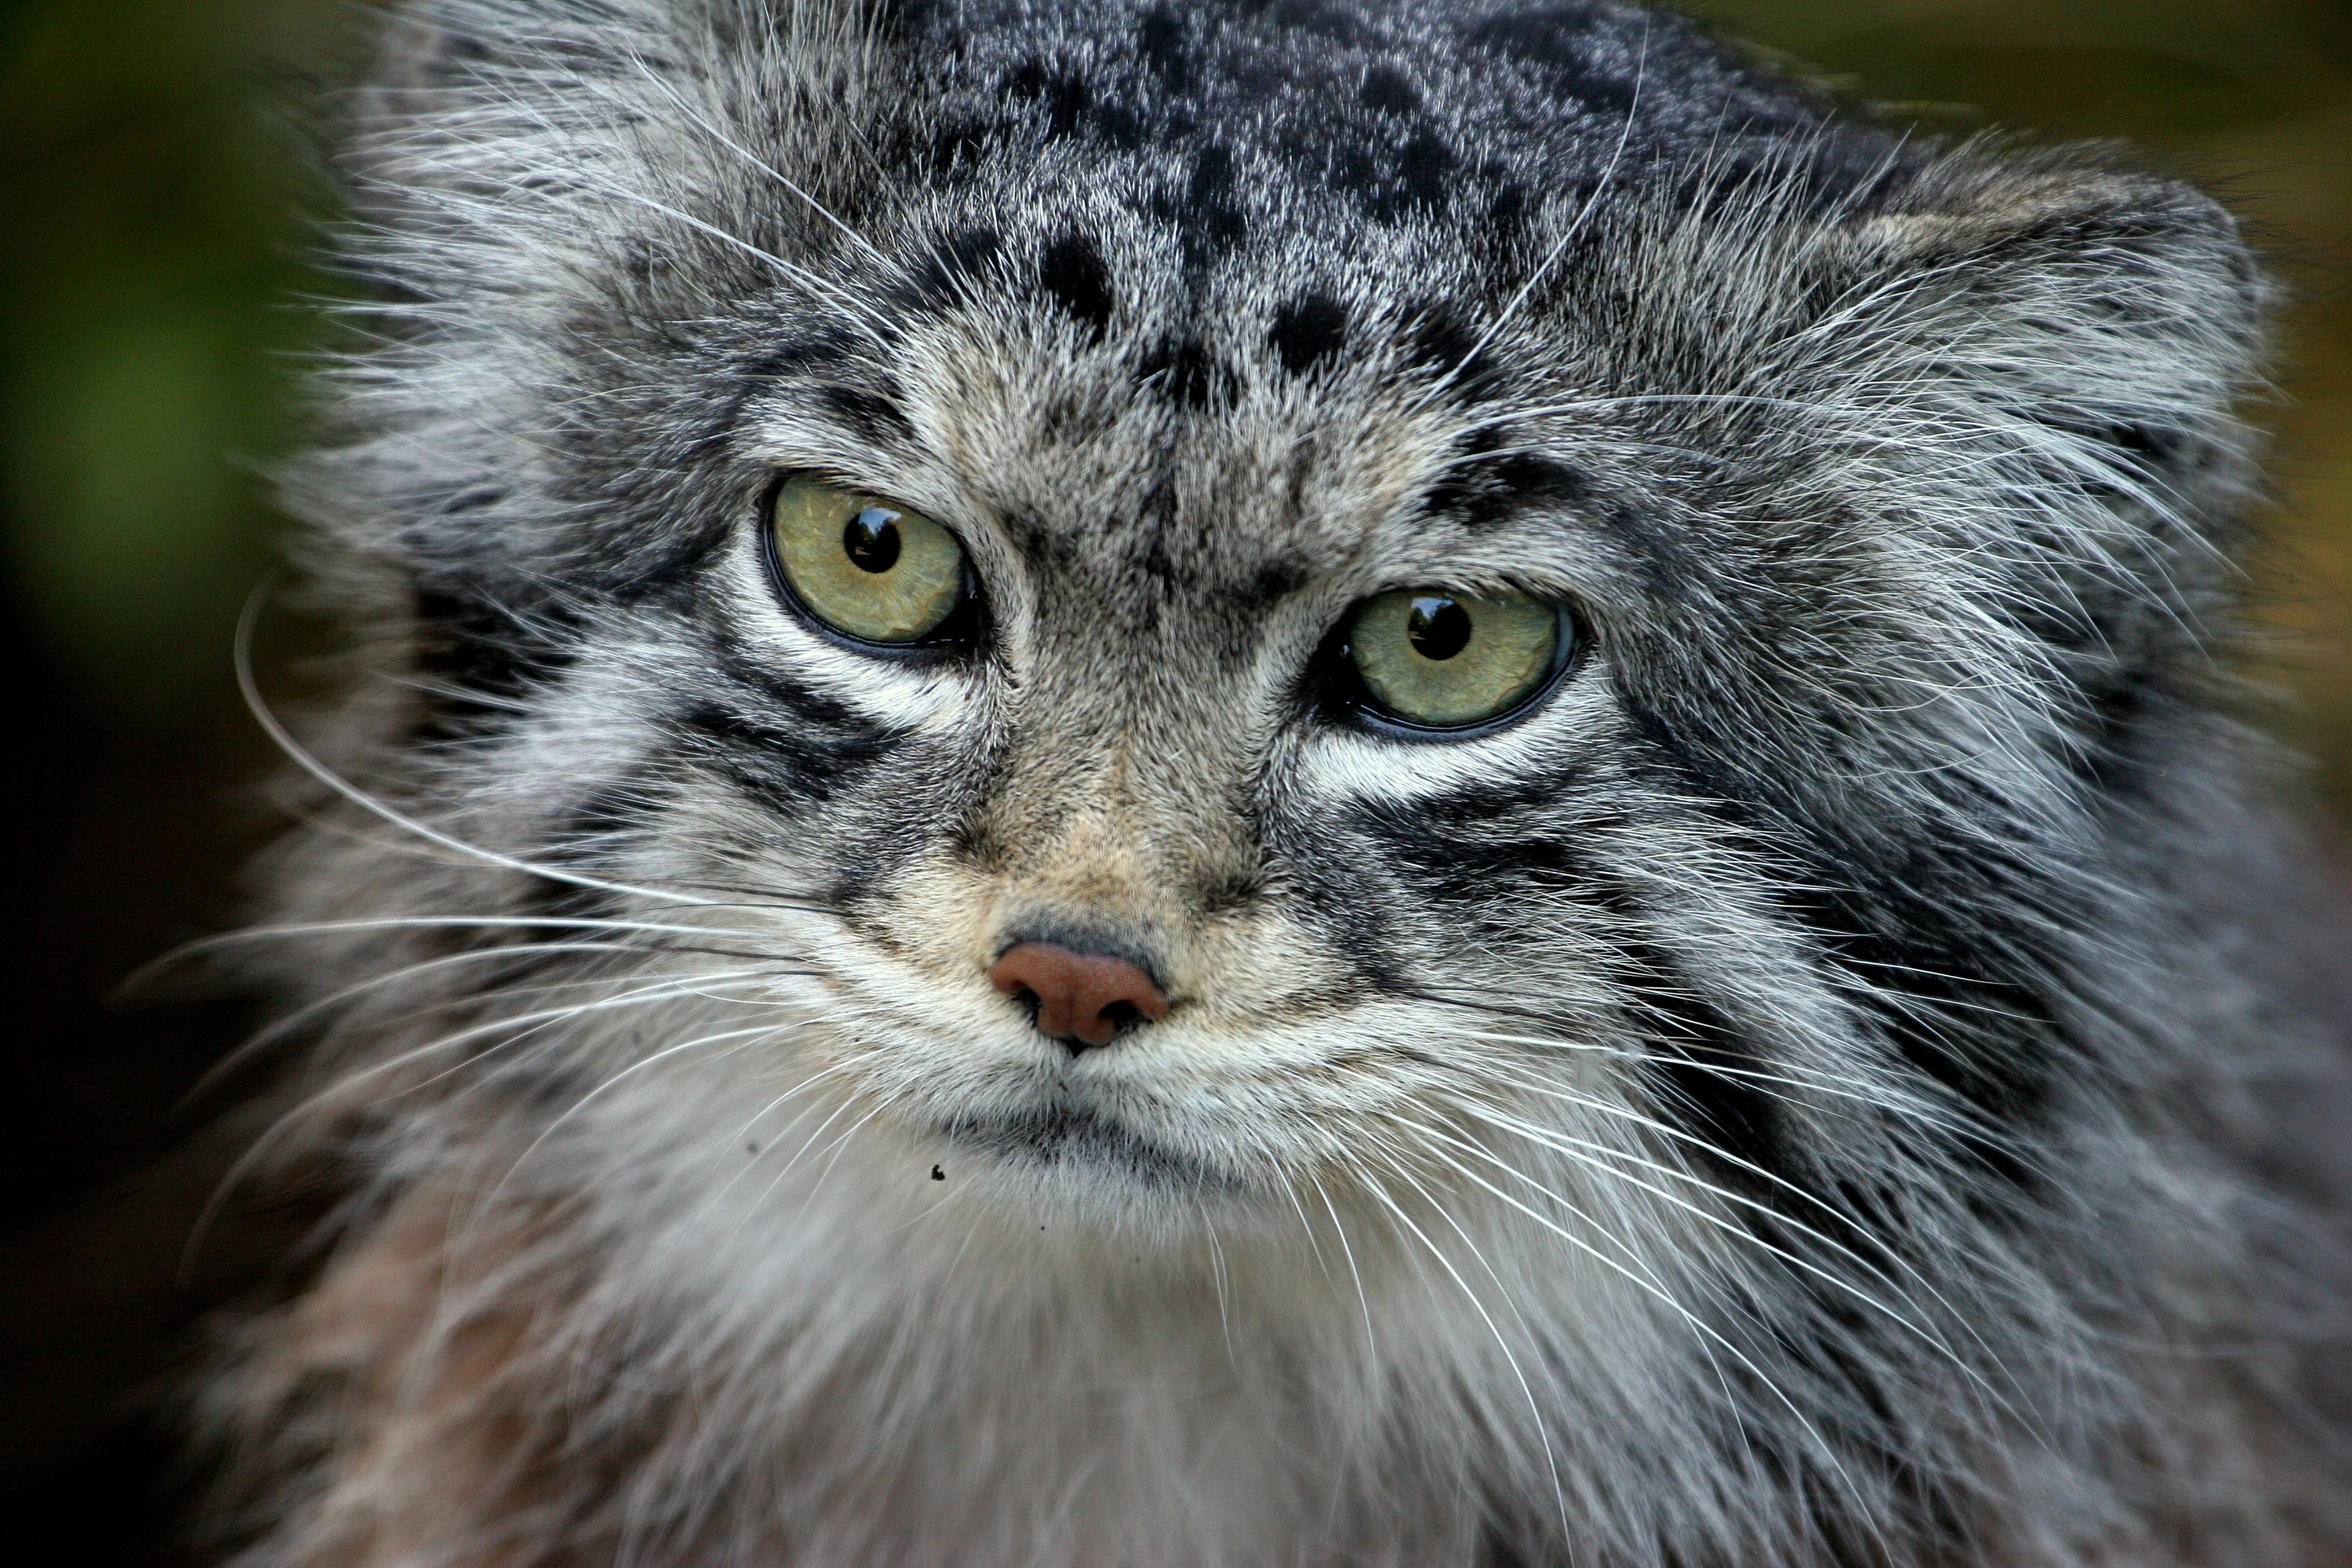 https://upload.wikimedia.org/wikipedia/commons/9/93/Pallas_cat.JPG